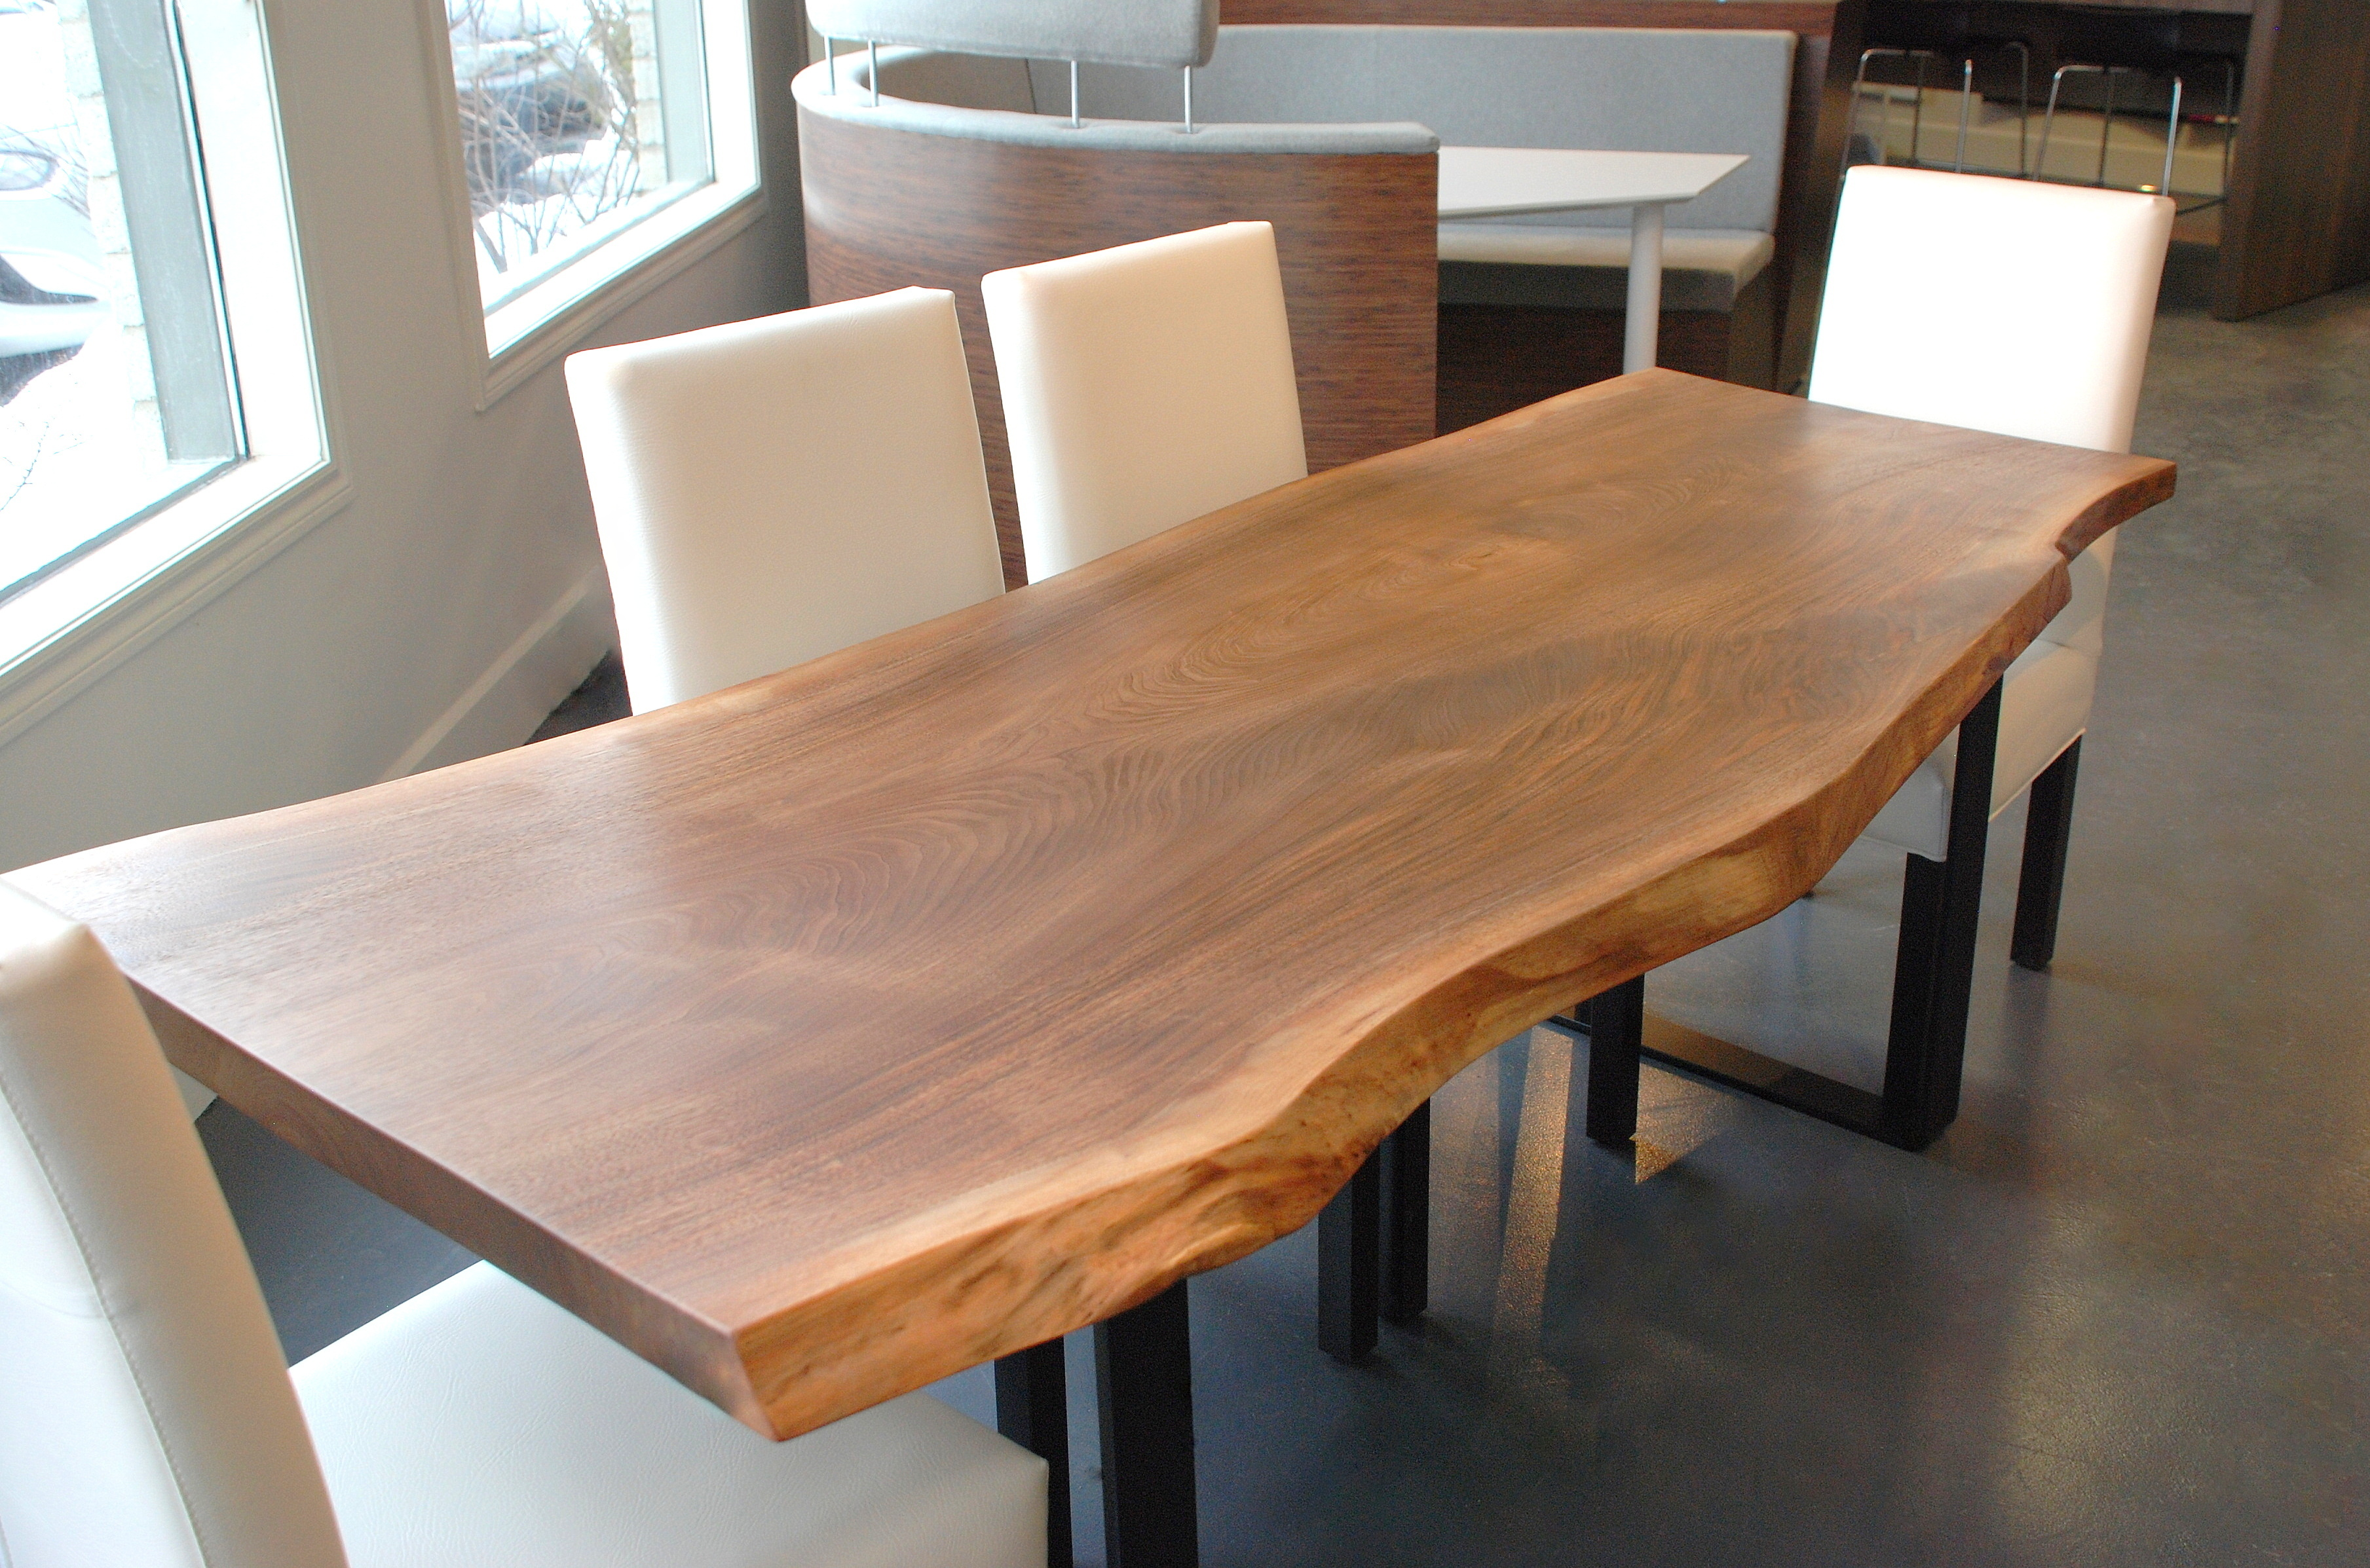 natural illinois furniture live hardwood slab dundee living conference slabs store dried kiln walnut black dining table with area edge and showroom chicago in tables on east the sycamore custom il at